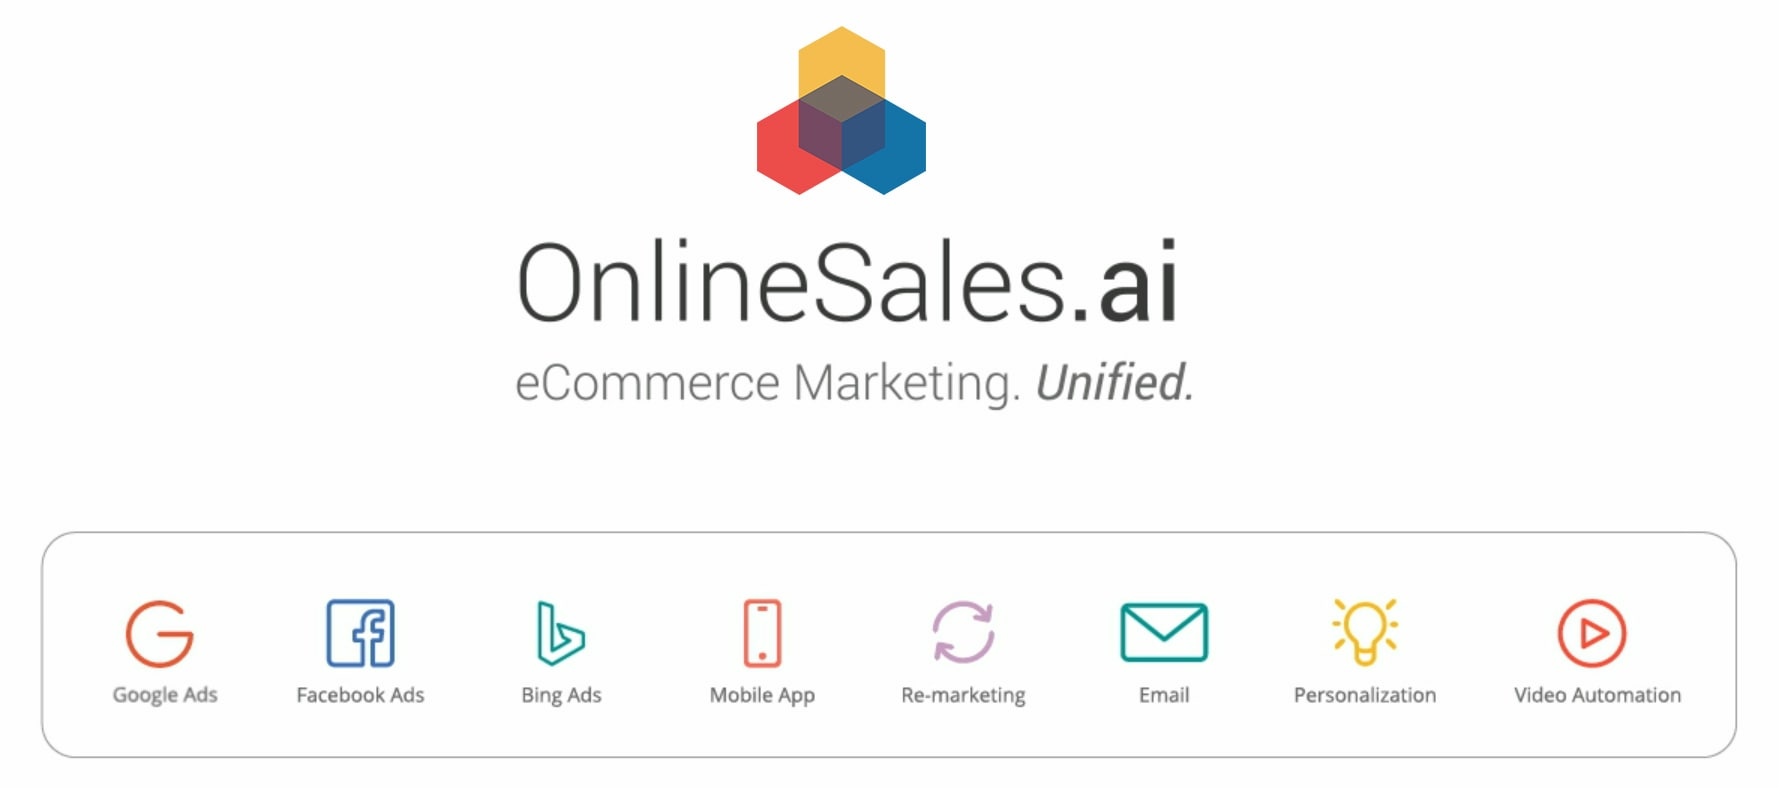 OnlineSales.ai Blog